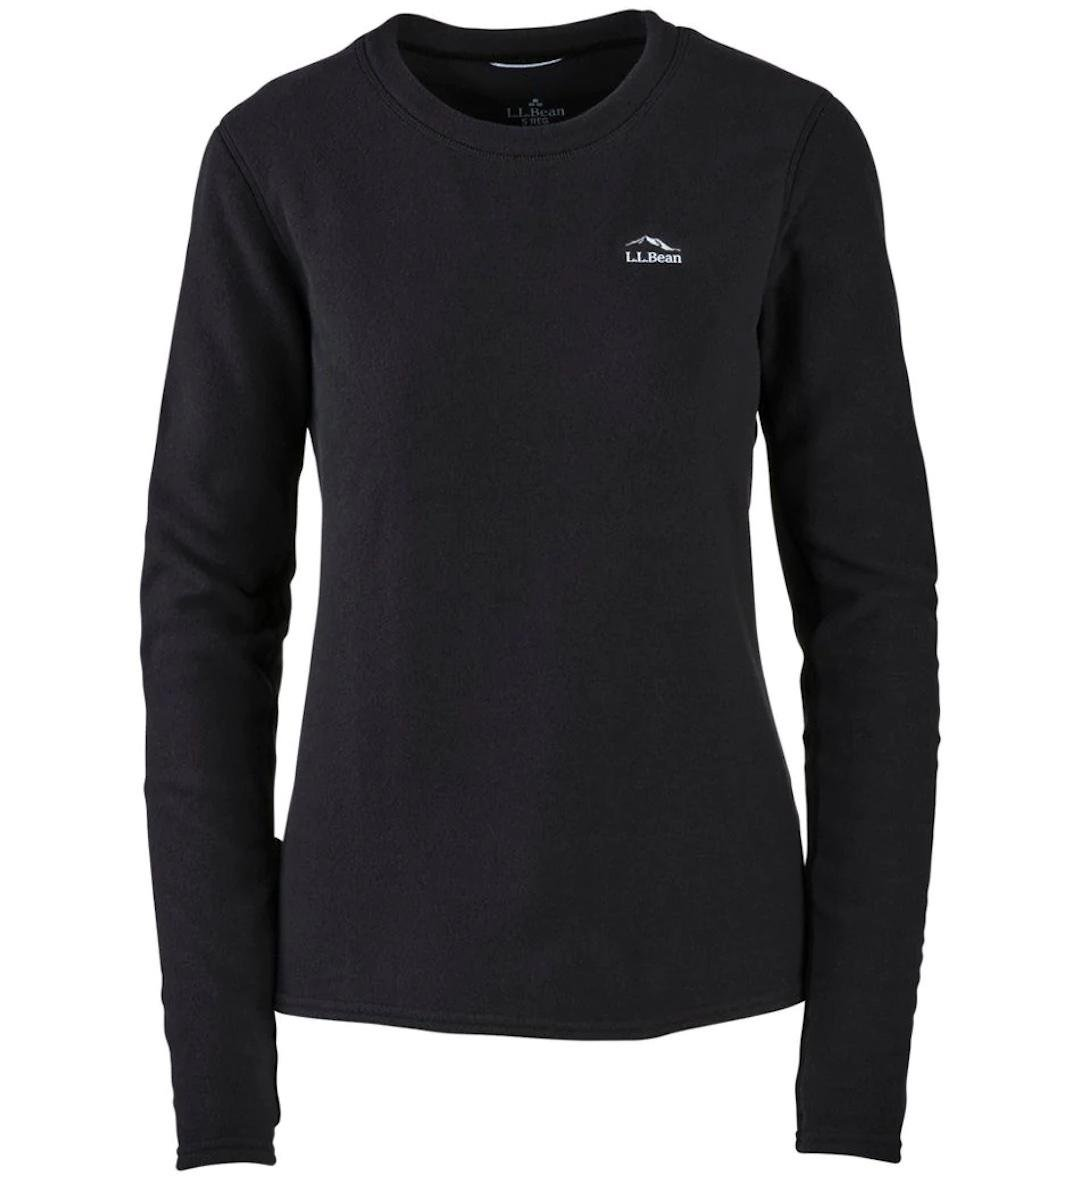 1631912893_540_32-Degrees-And-More-Base-Layer-Brands-That-Are-Warm